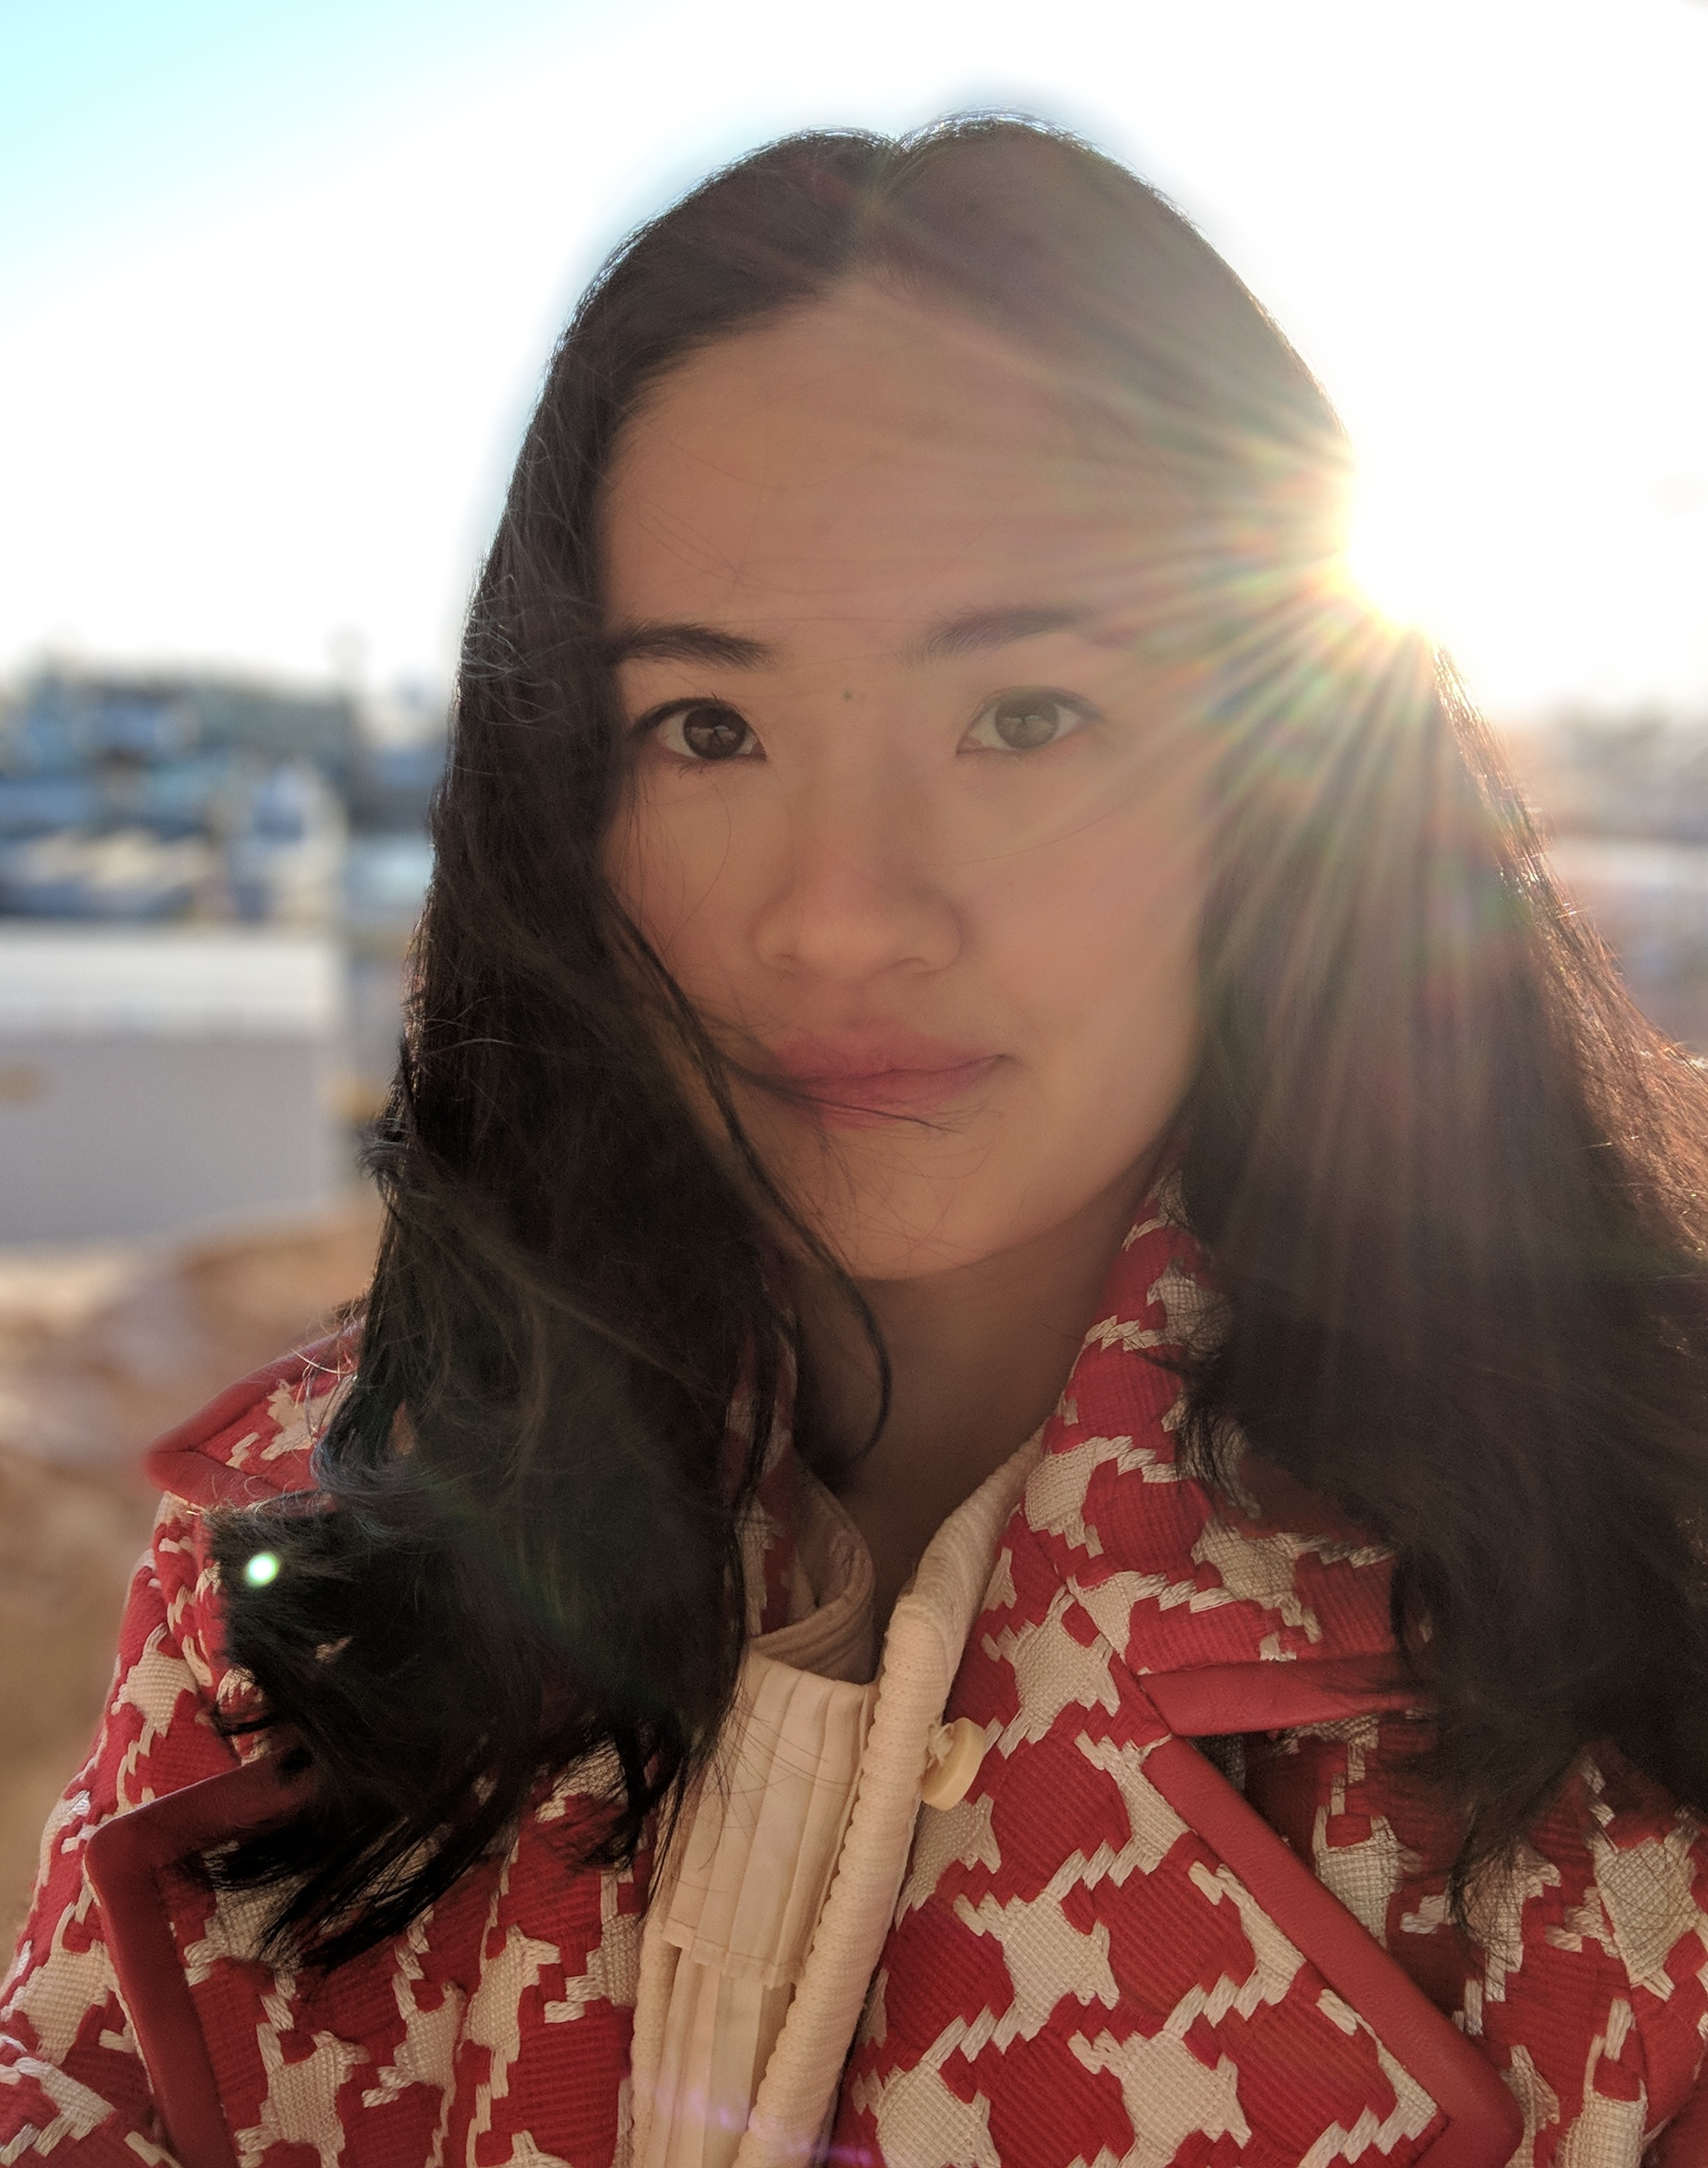 - islander/ Poet/ Translator/ A.I. Writer/ VUI designer/ Editor/ Journalist/ Educator/Chia-Lun Chang is the author of One Day We Become Whites (No, Dear/Small Anchor Press, 2016)She has received support from Jerome Hill Artist Fellowship, Lower Manhattan Cultural Council, Tofte Lake Center, Vermont Studio Center and Poets House. Born and raised in New Taipei City, Taiwan, she lives in New York City.